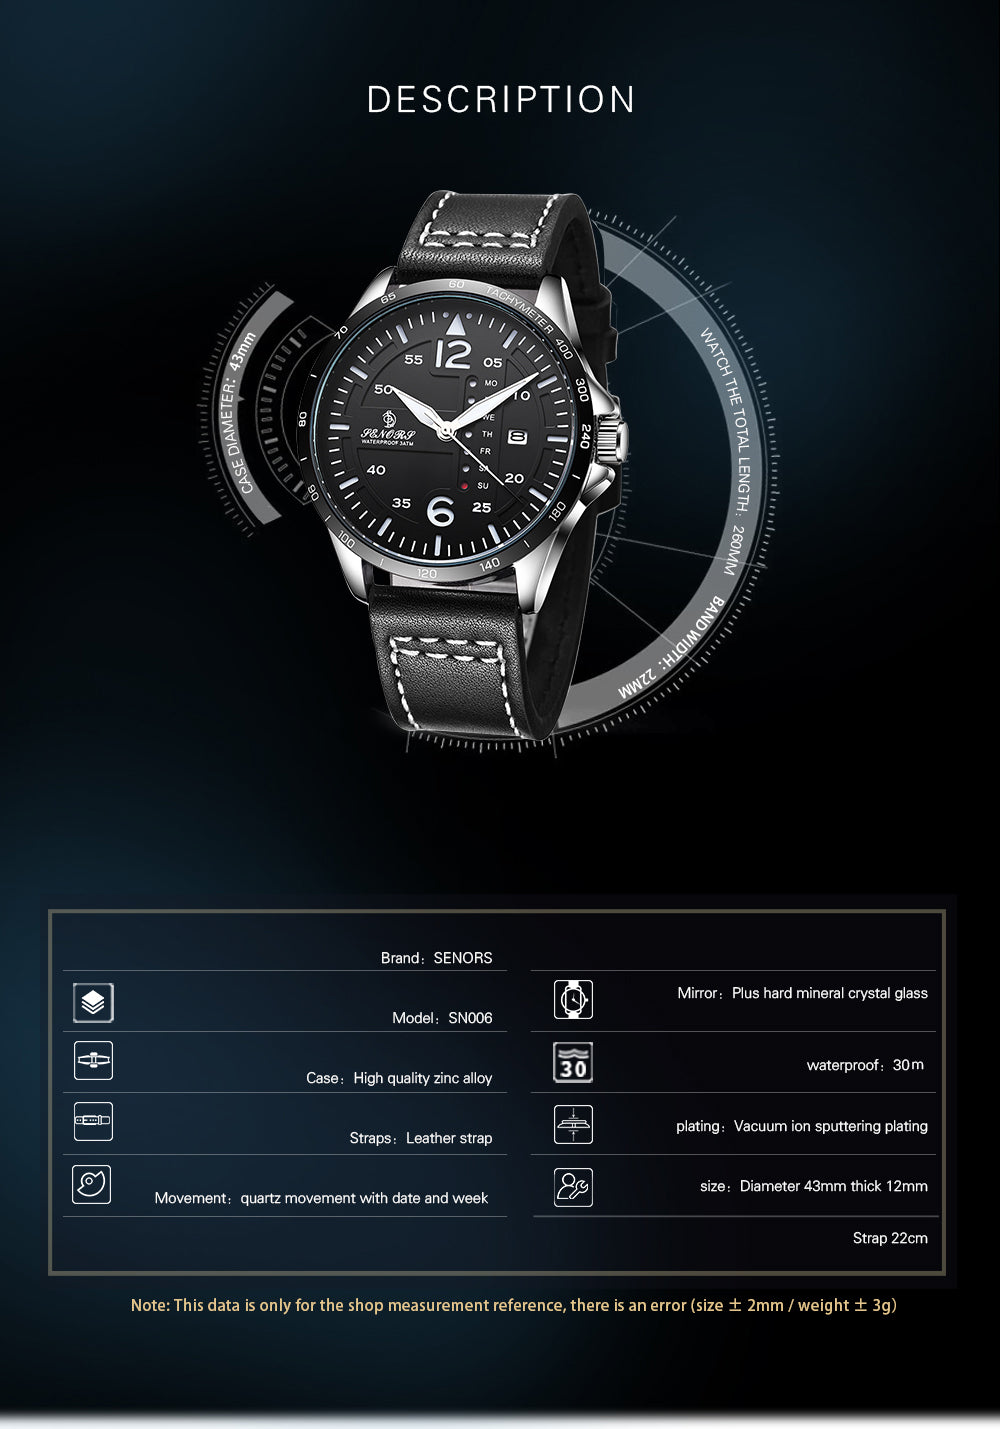 cheapest country to buy watches